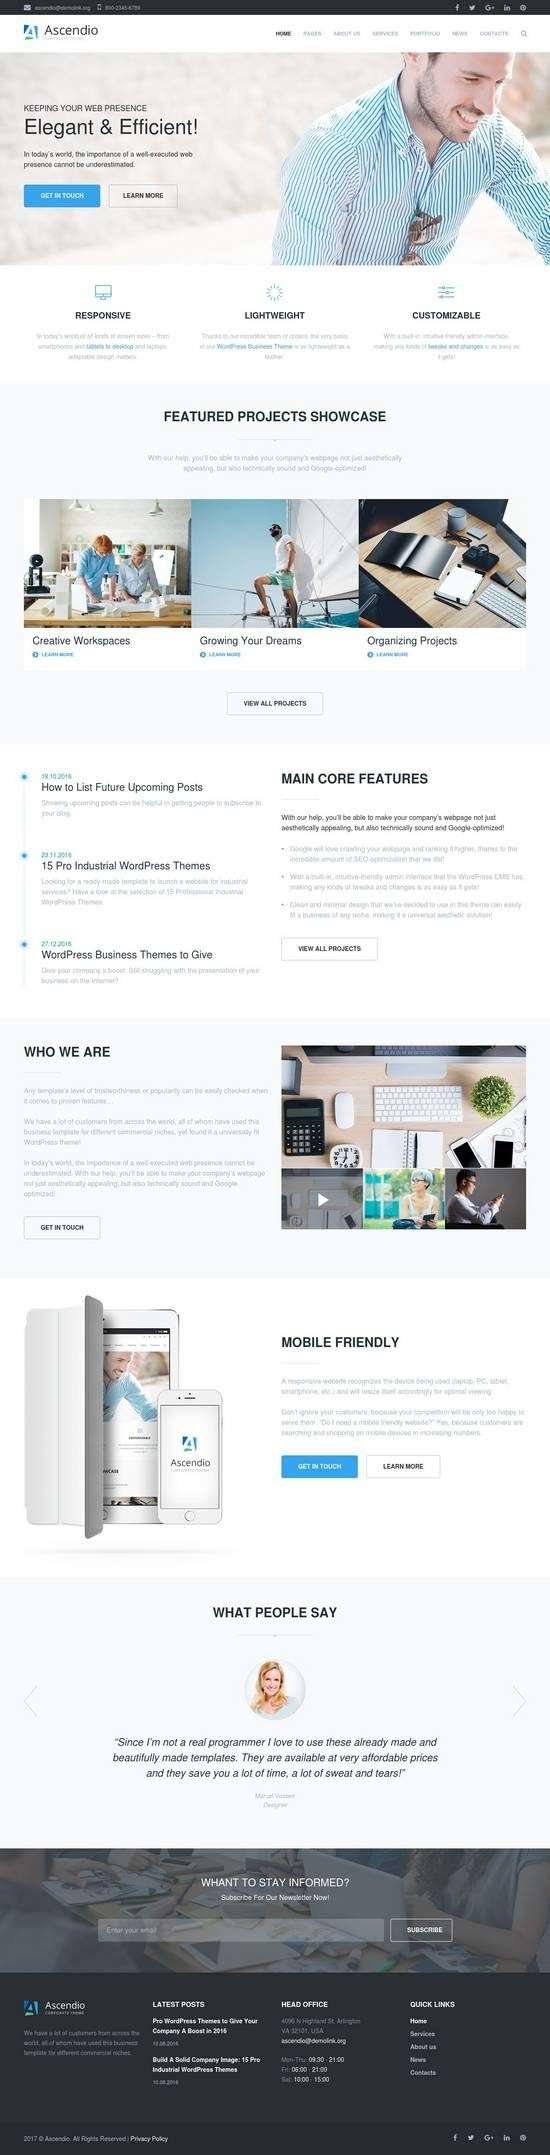 ascendio business wordpress theme 01 550x2155 - Ascendio WordPress Theme